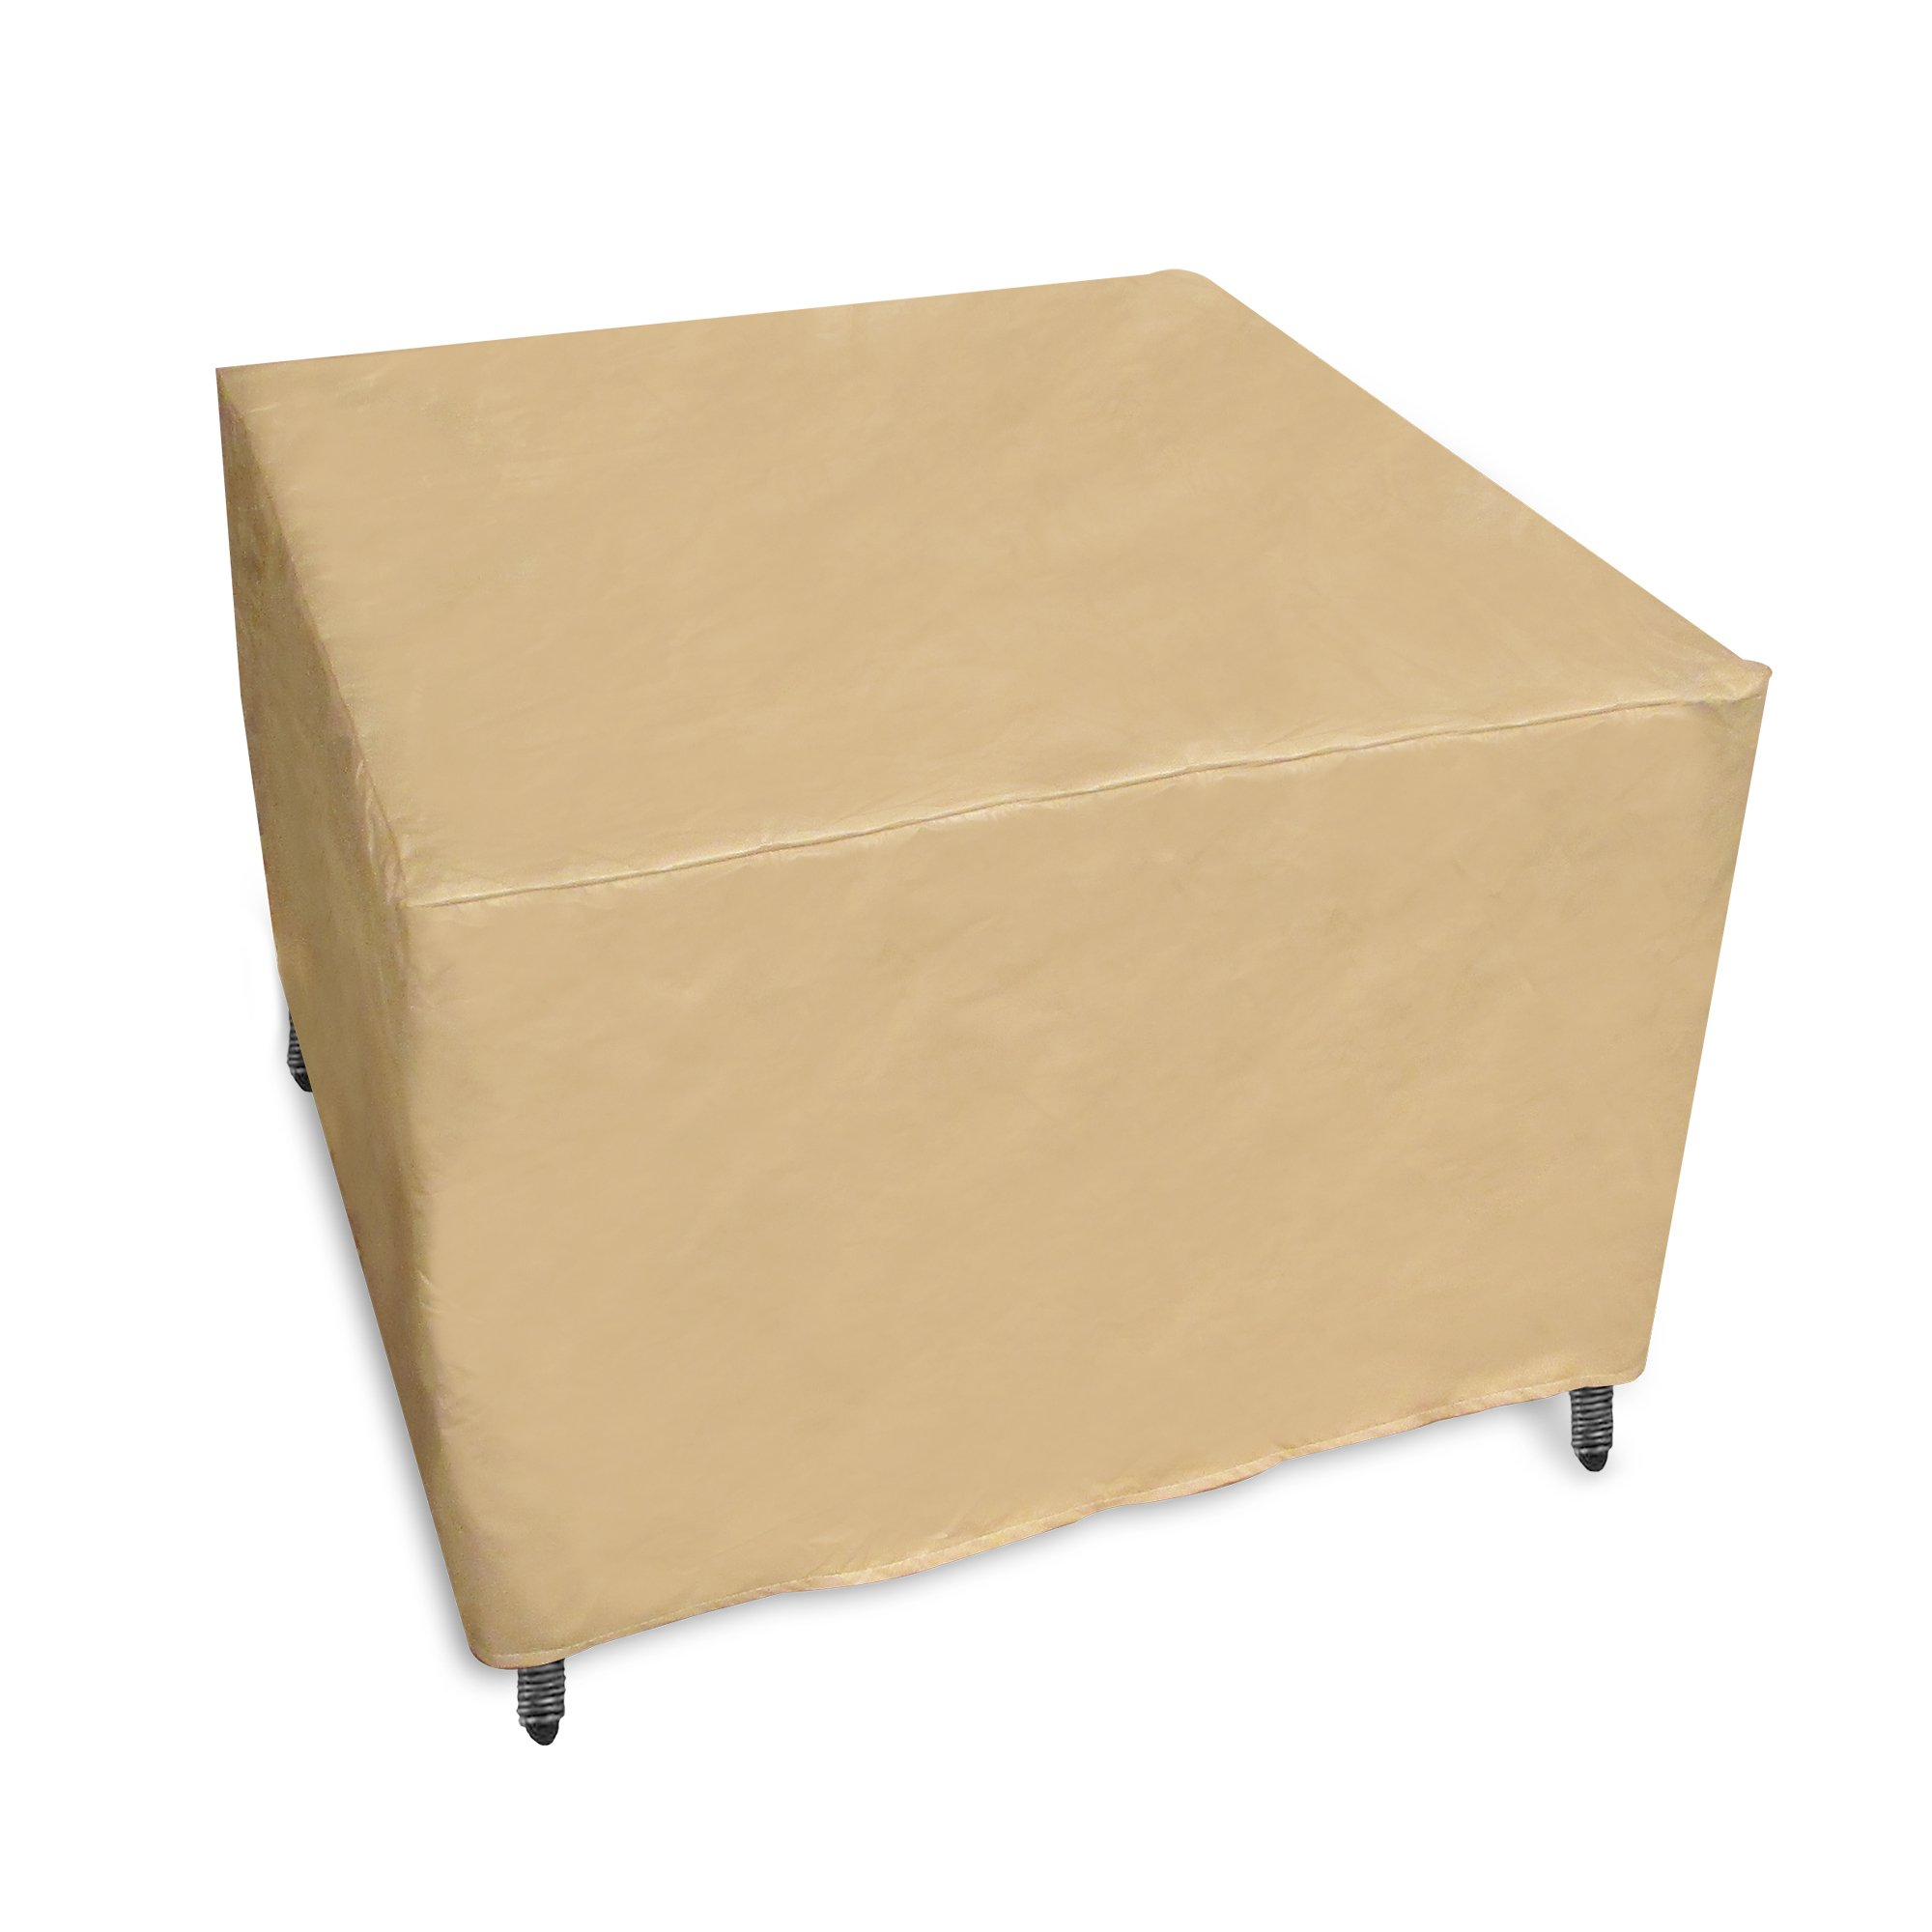 Protective Covers 1165-TN Quality Large Outdoor Furniture Cover, Tan